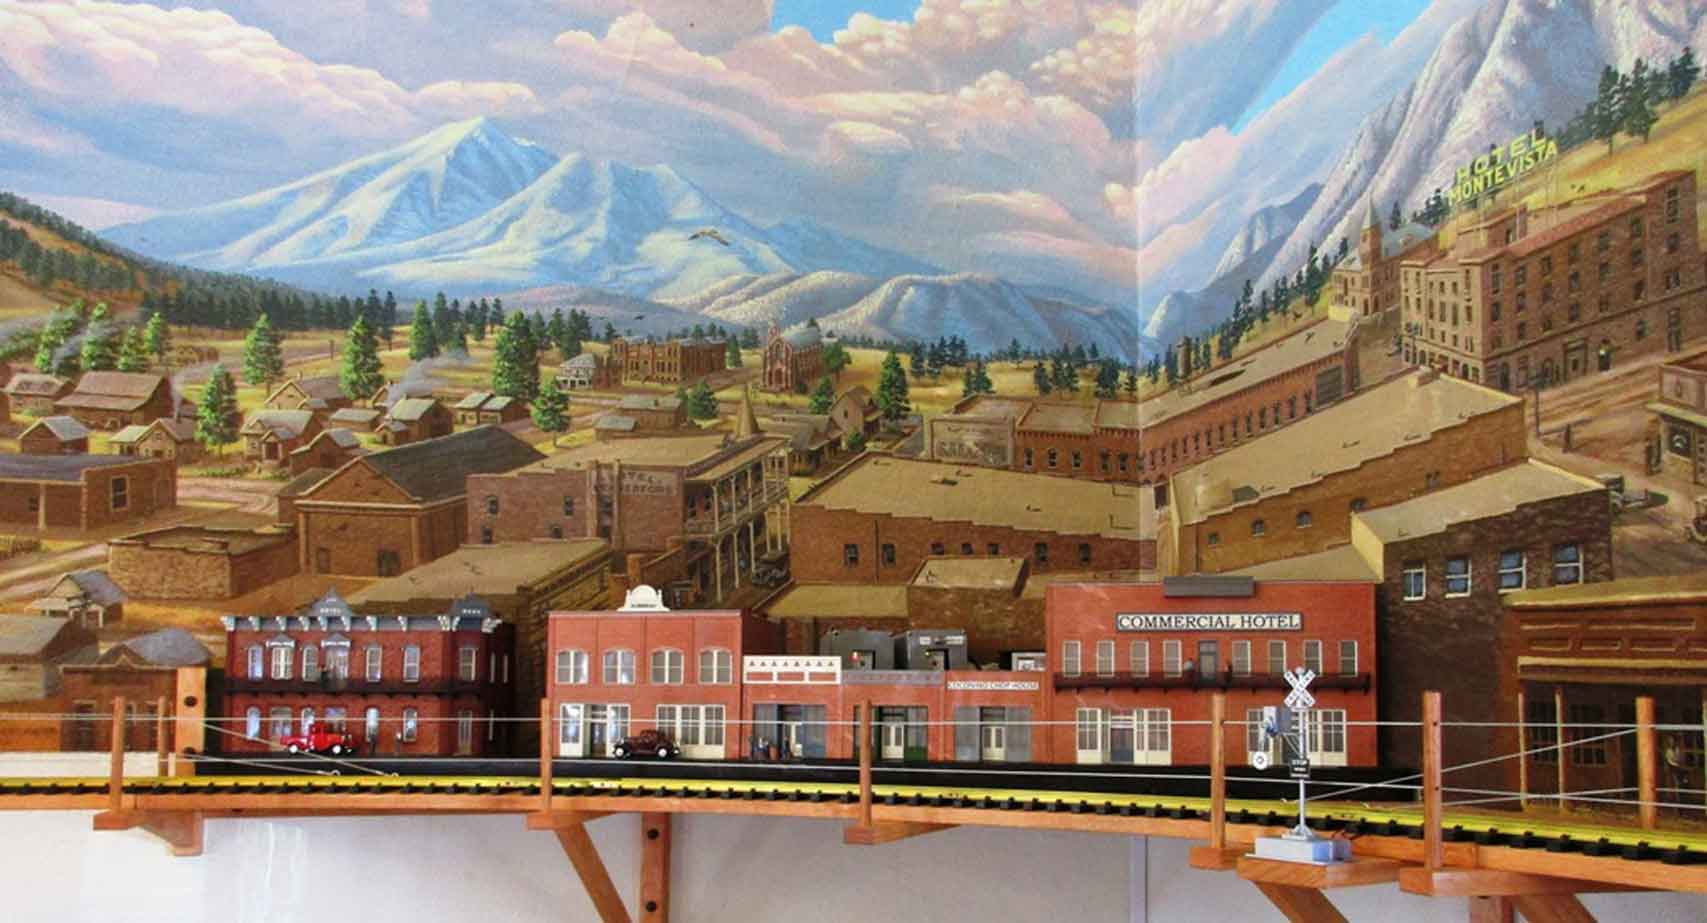 Flagstaff Visitor Center Mural 23